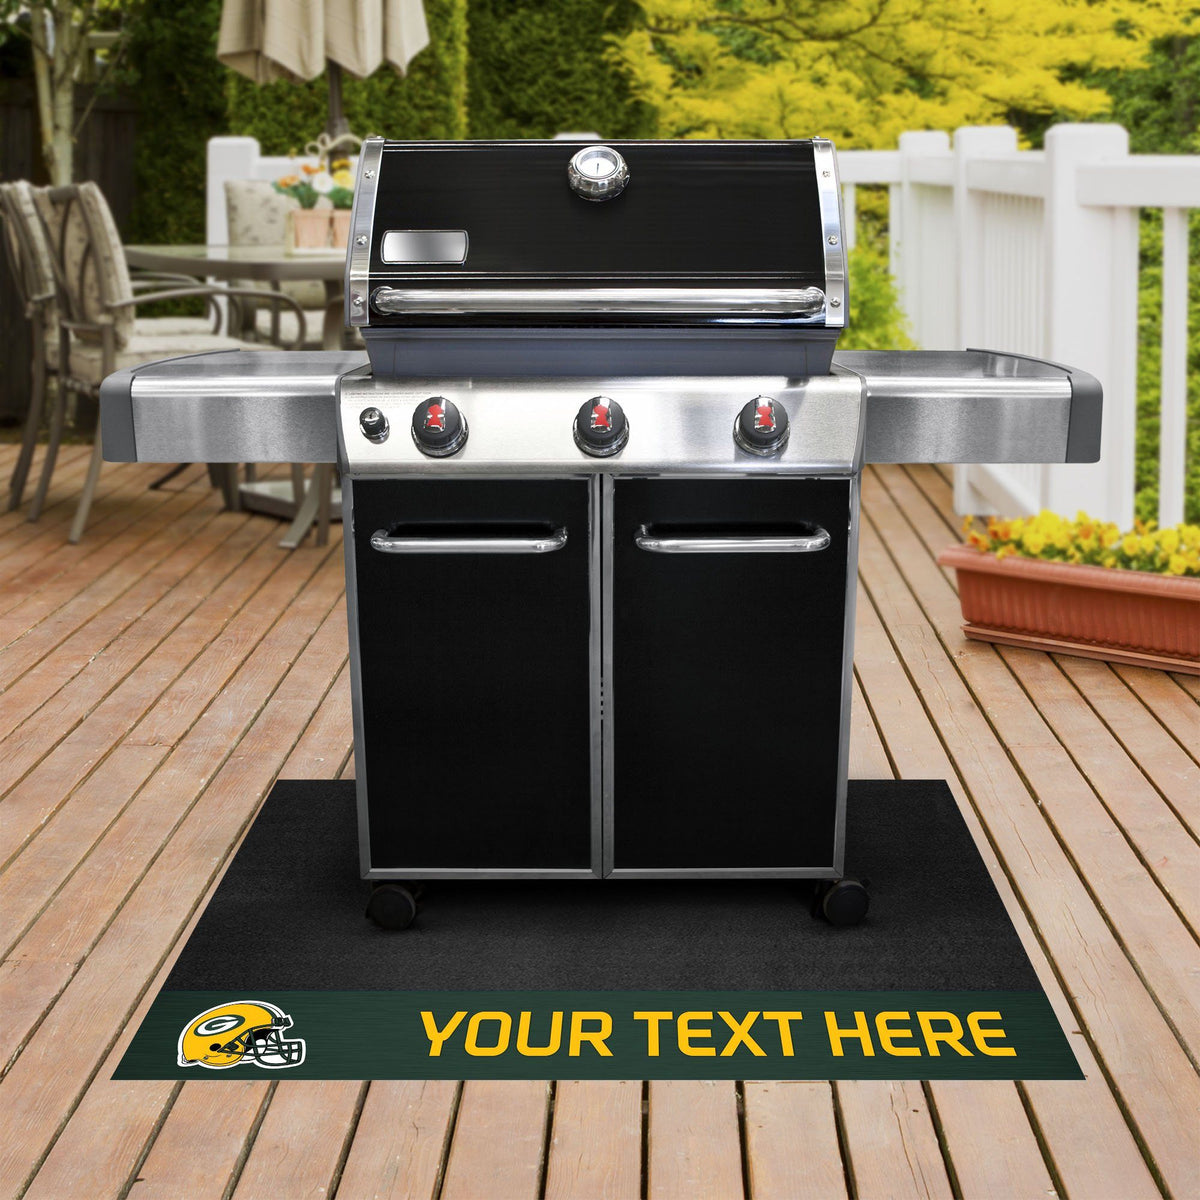 NFL Personalized Grill Mat Personalized Grill Mat Fan Mats Green Bay Packers